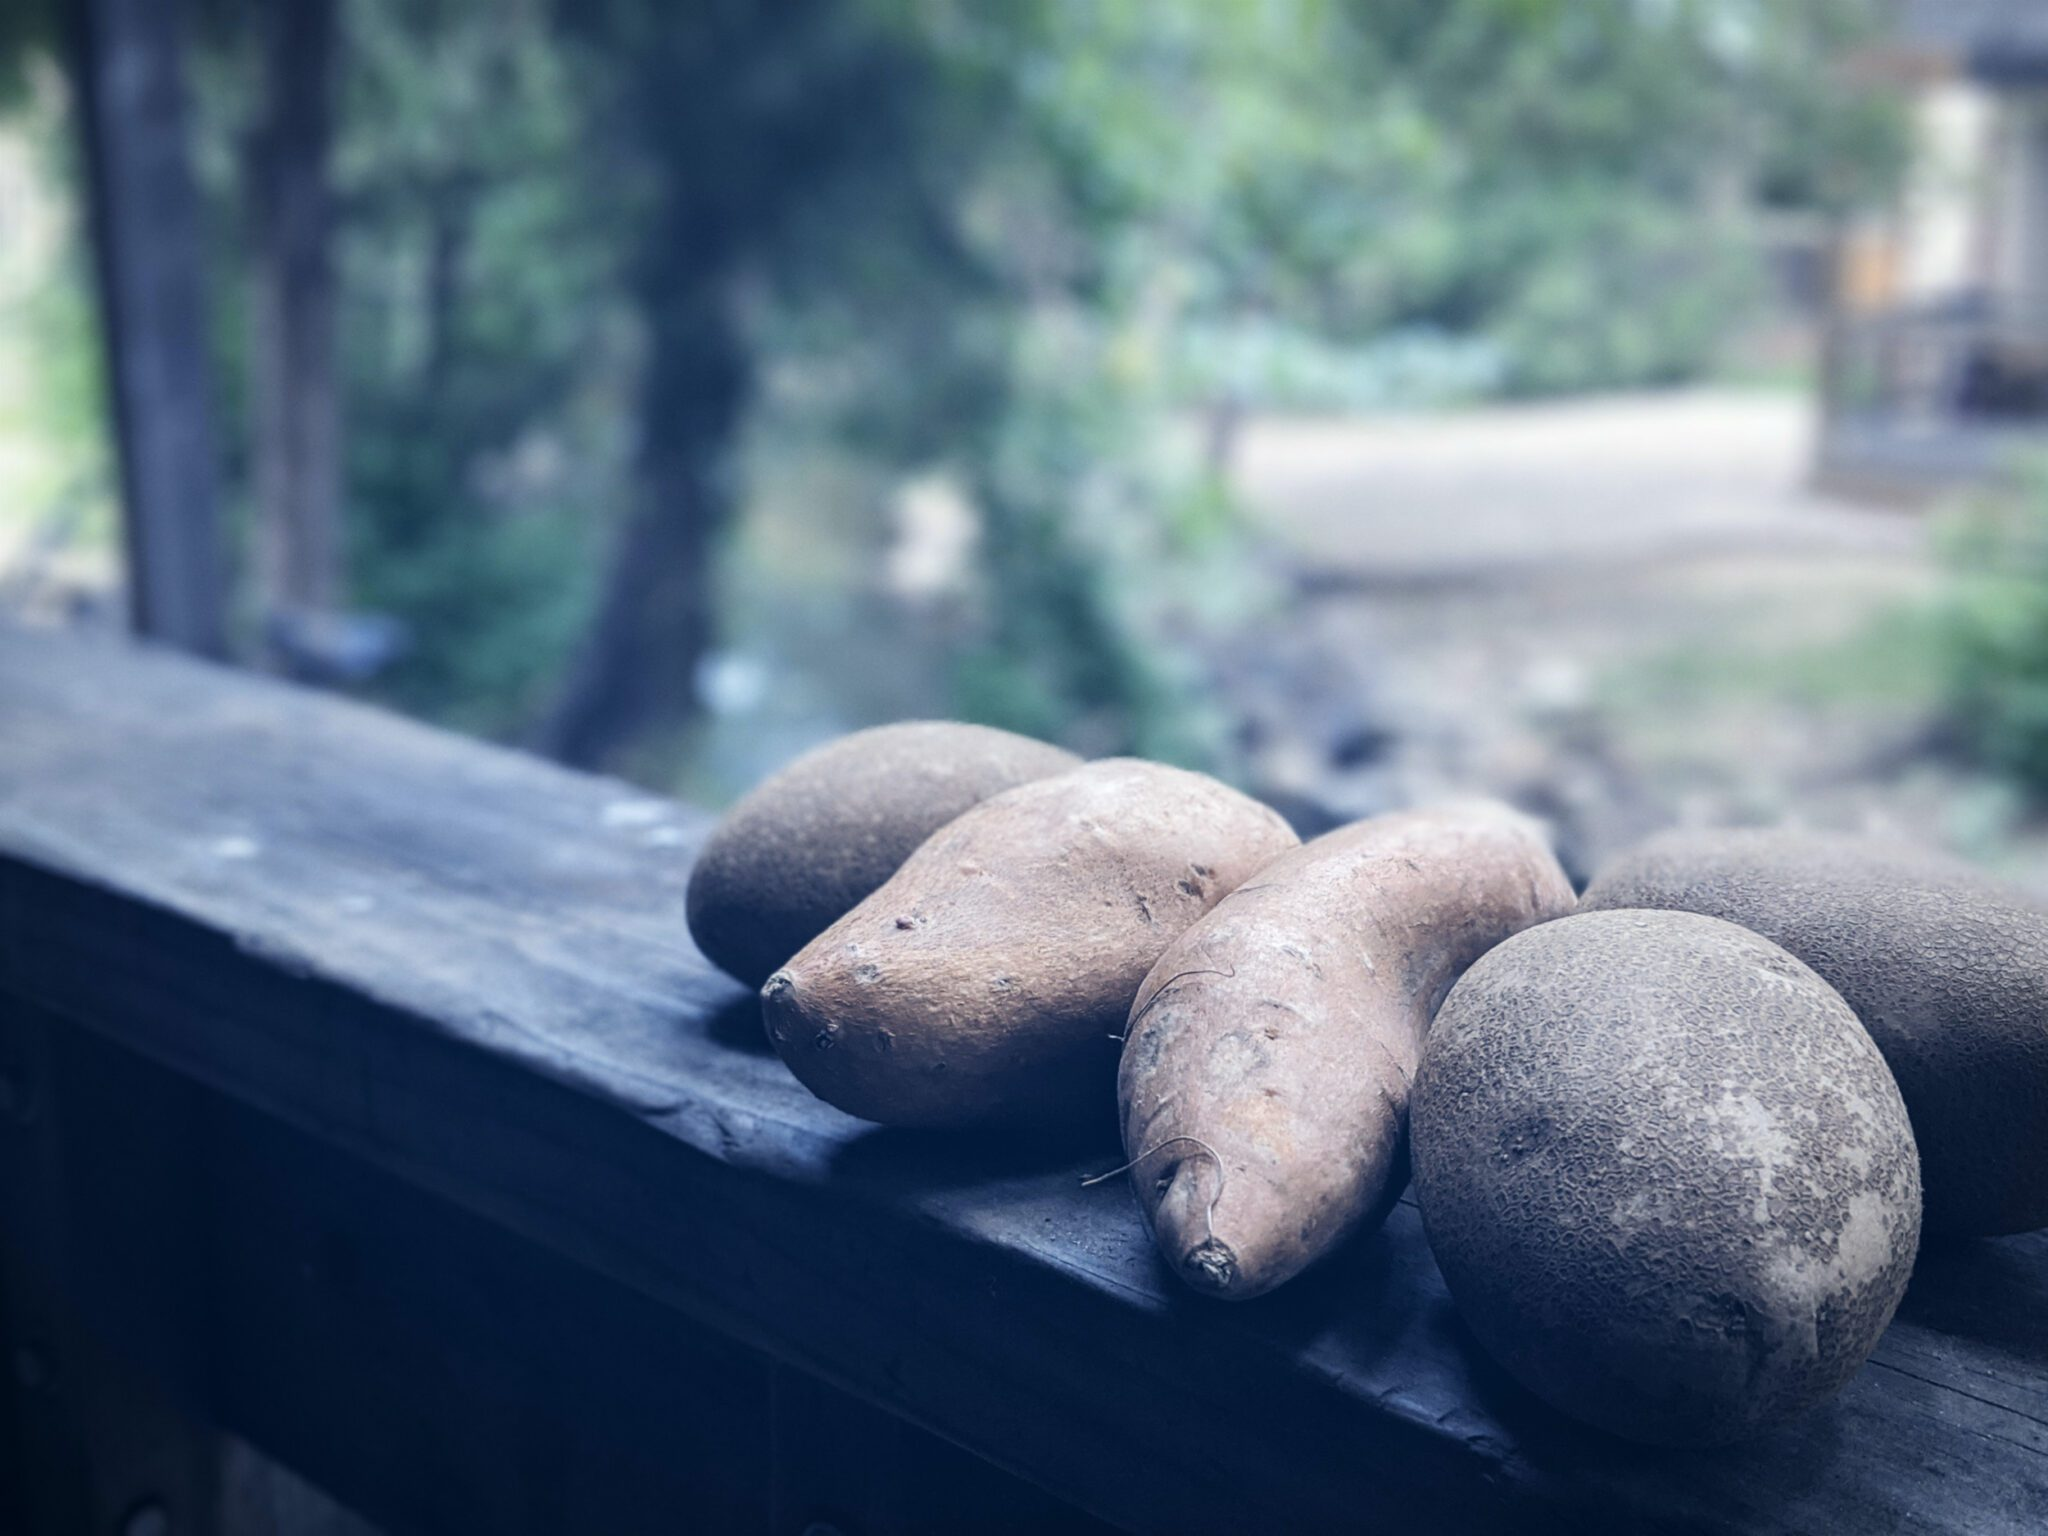 Potatoes for race nutrition